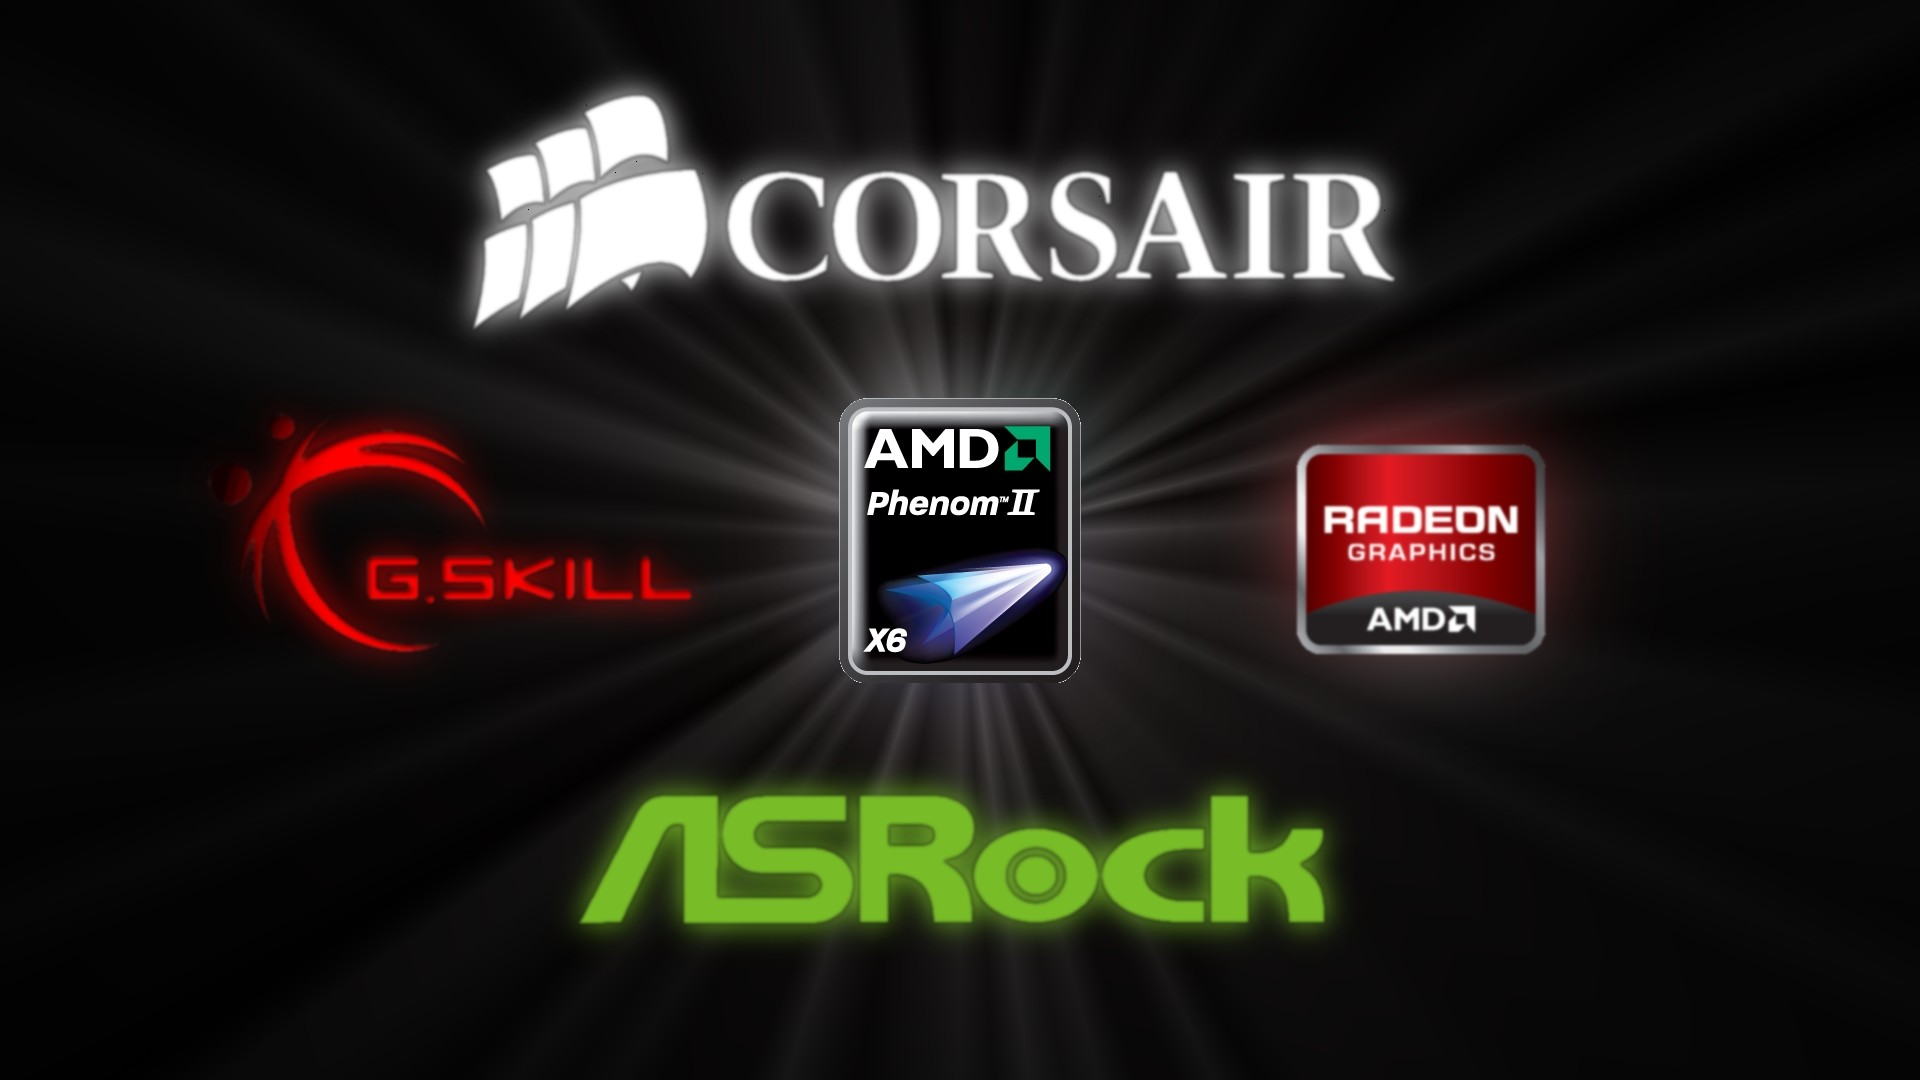 1920x1080 asrock wallpapers | WallpaperUP ...